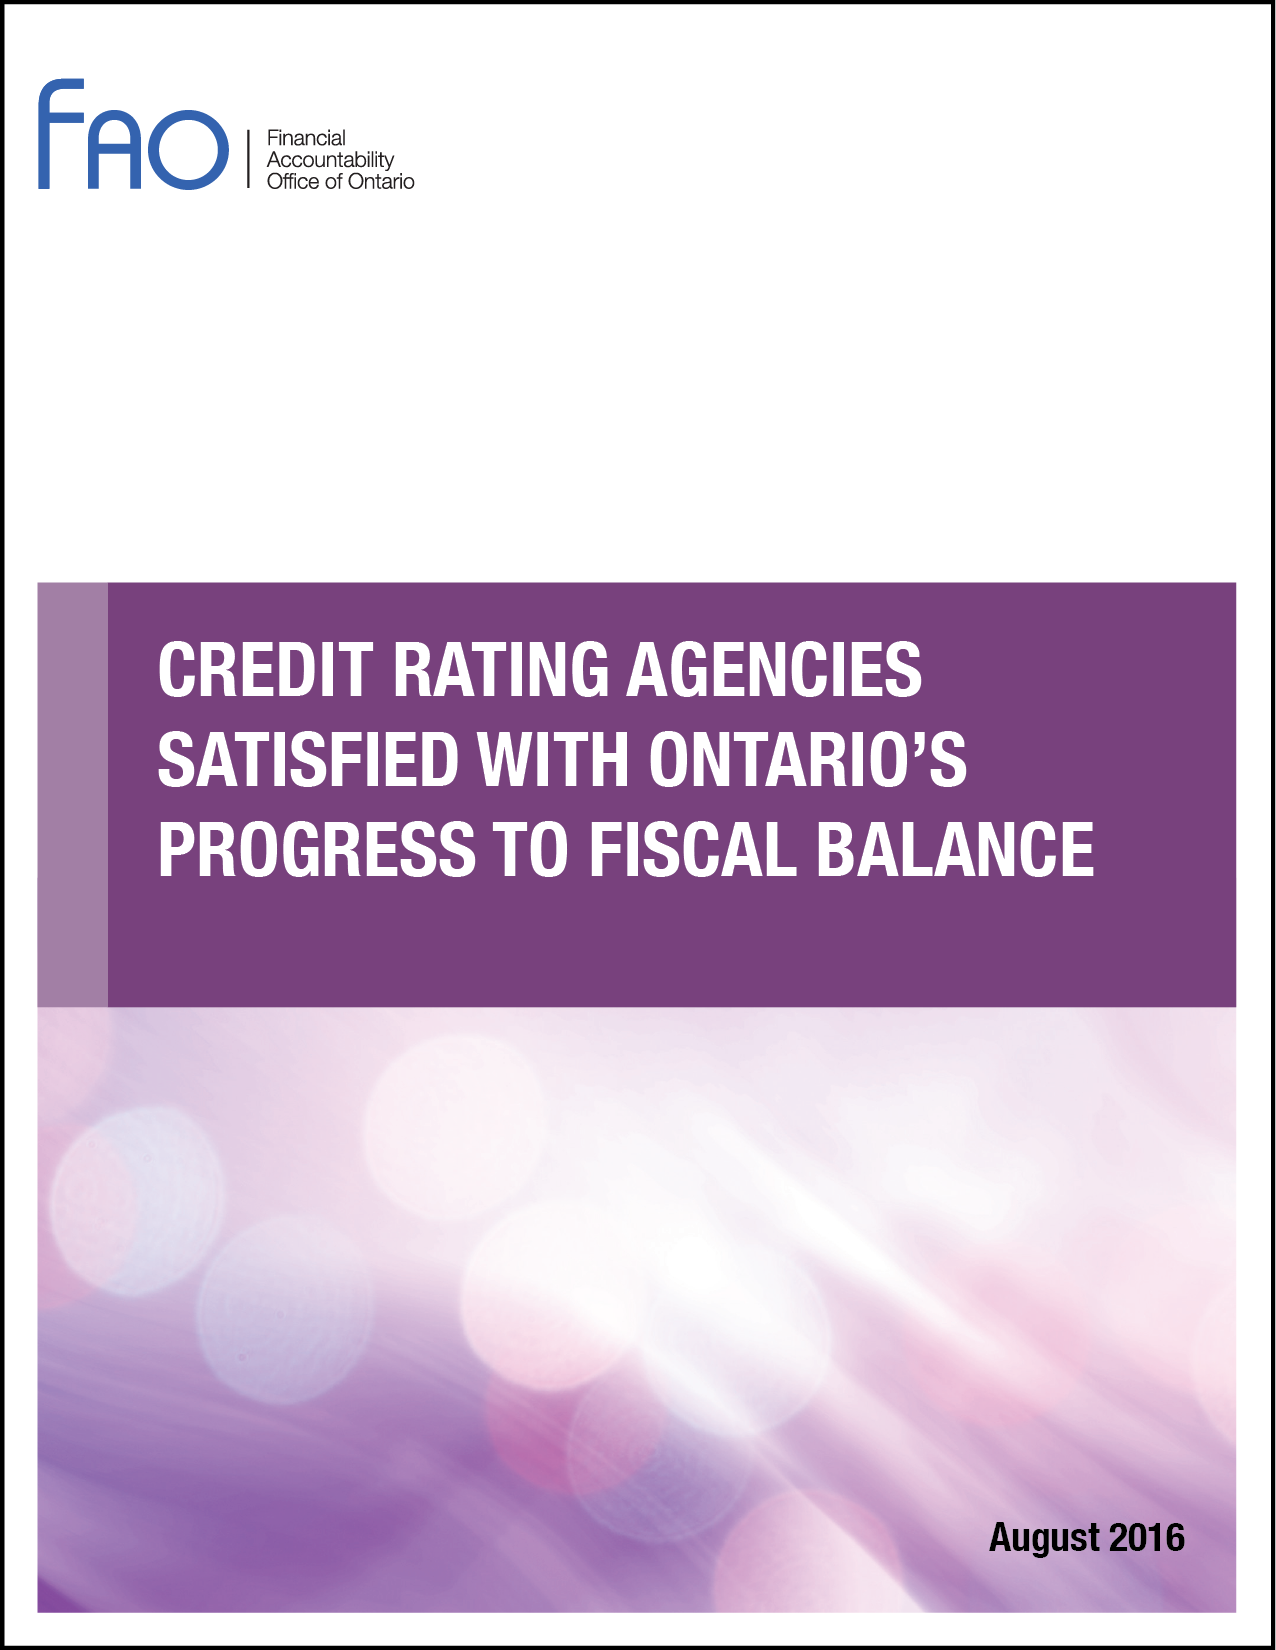 Credit Rating Agencies Satisfied with Ontario's Progress to Fiscal Balance